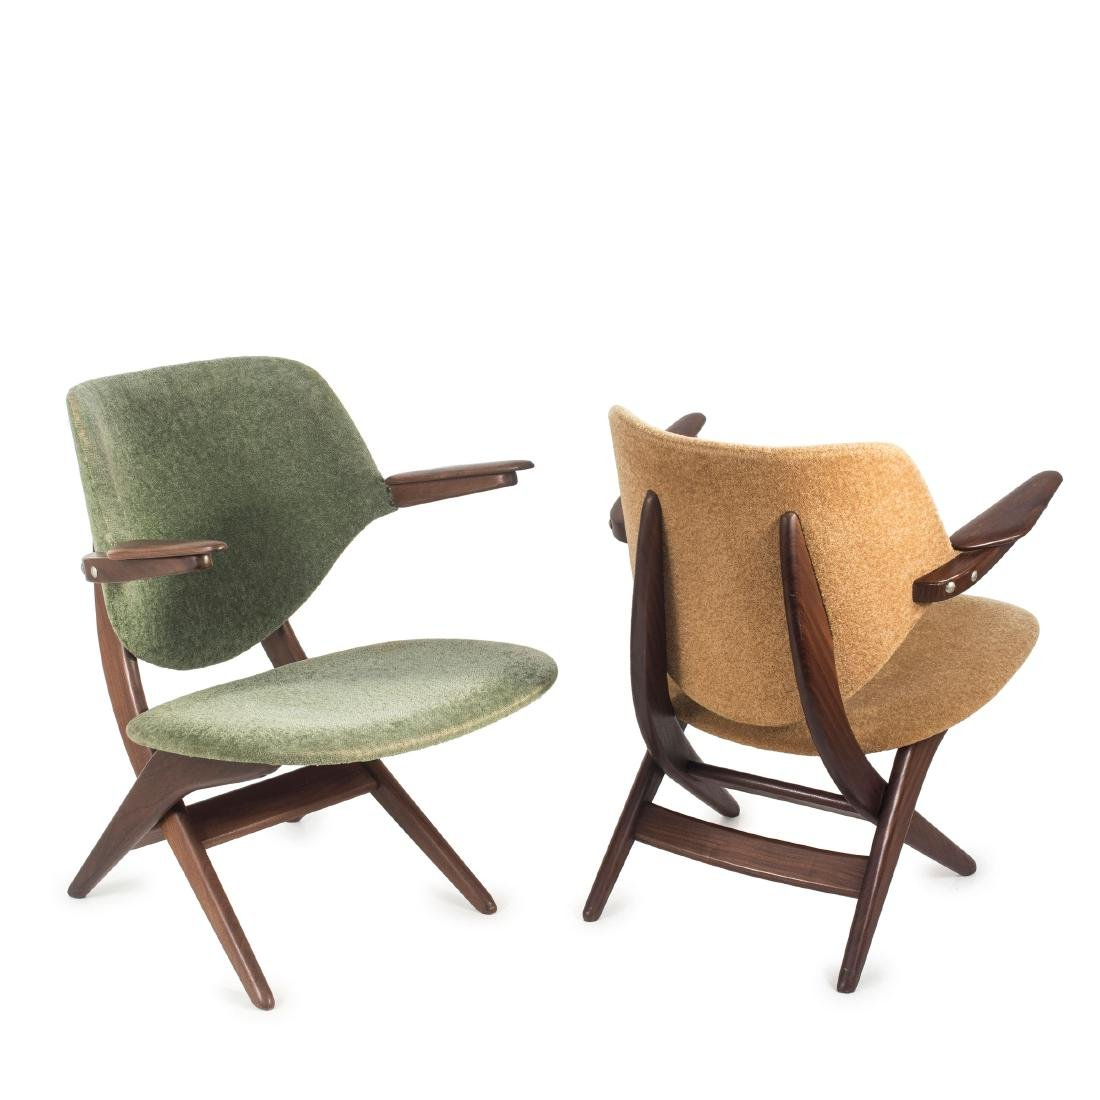 Two 'Pelican' easy chairs, c. 1955